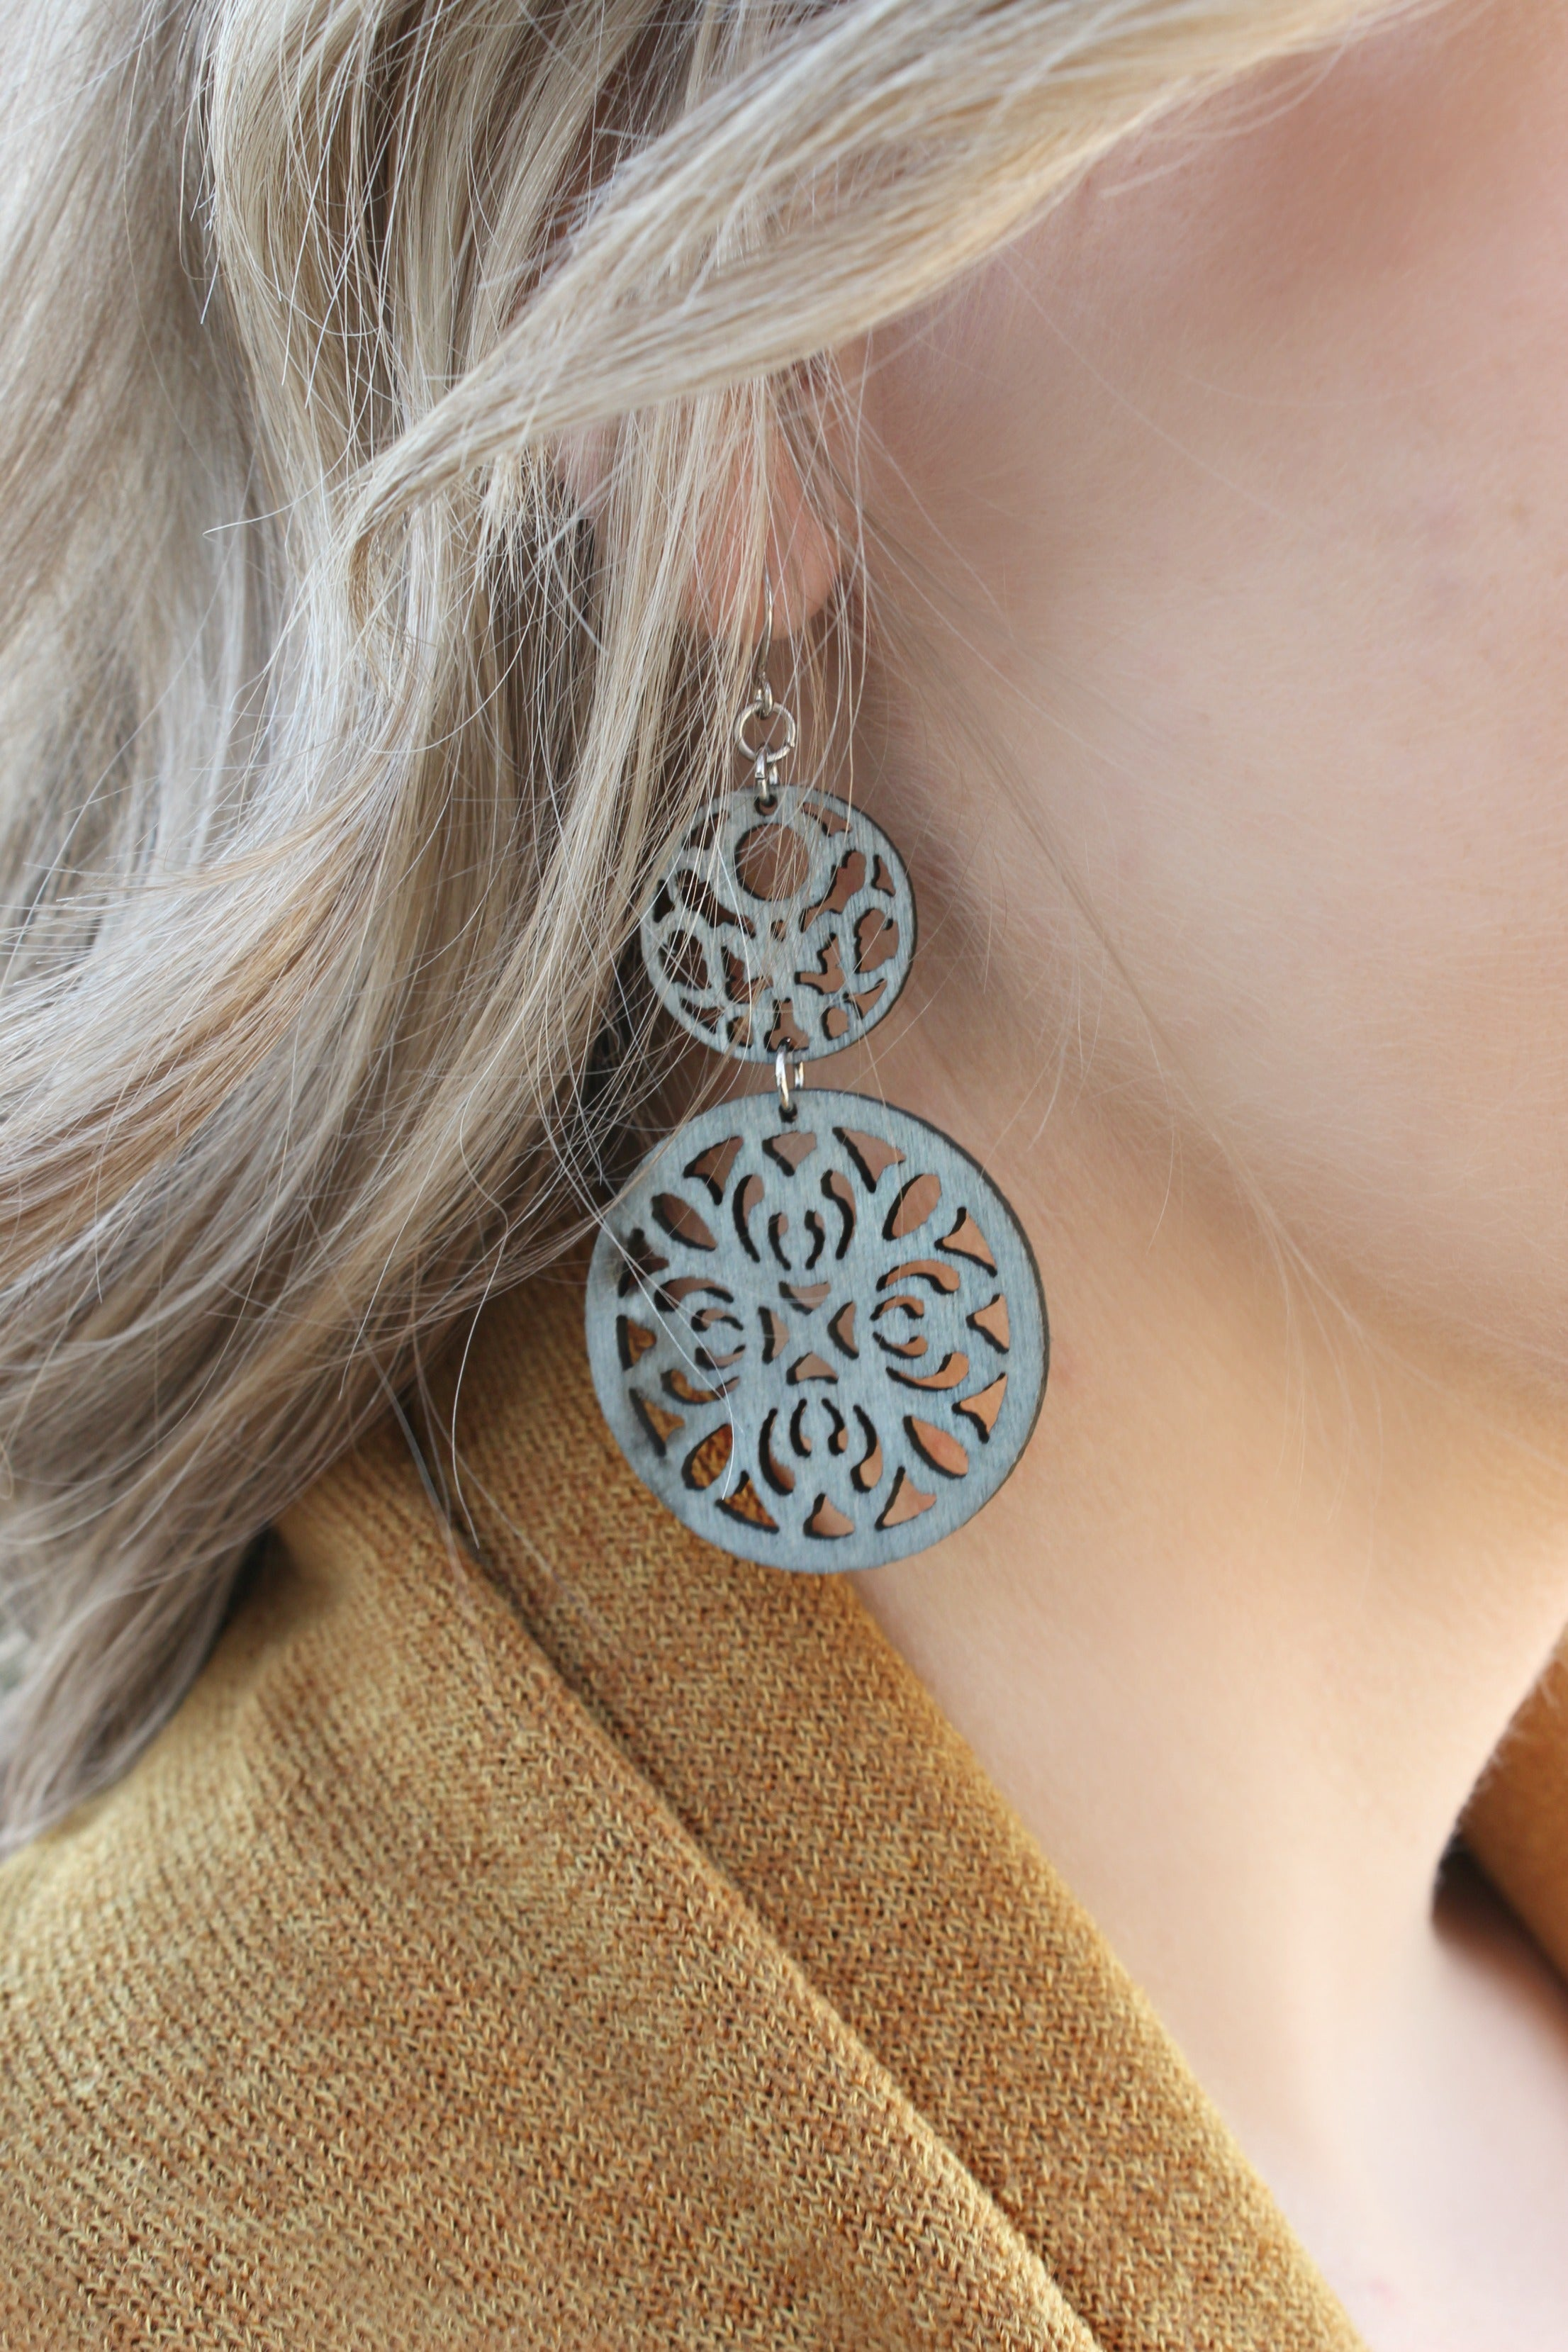 Just Essentials Earrings in Gray - Leah B. Boutique